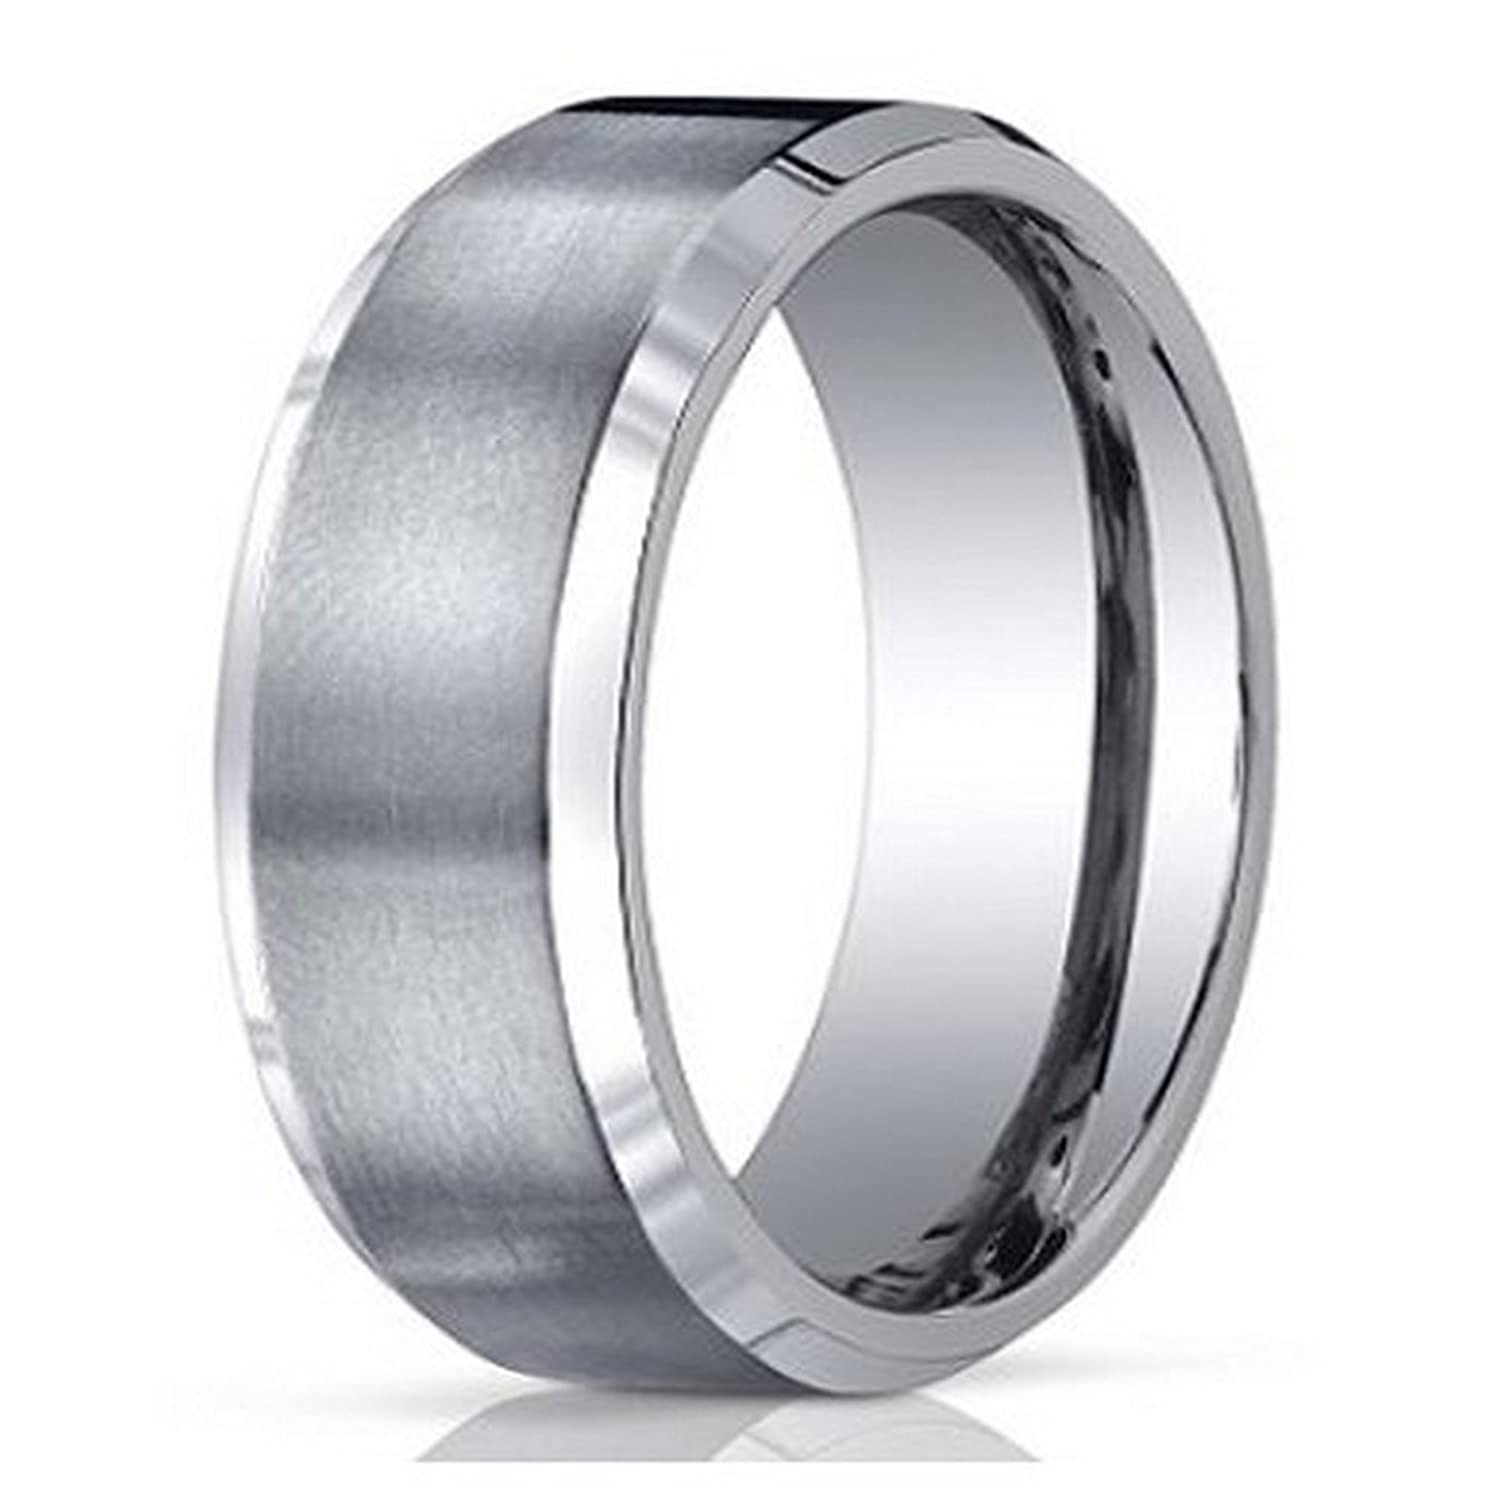 Men s Benchmark Titanium Wedding Band with Satin Finish and